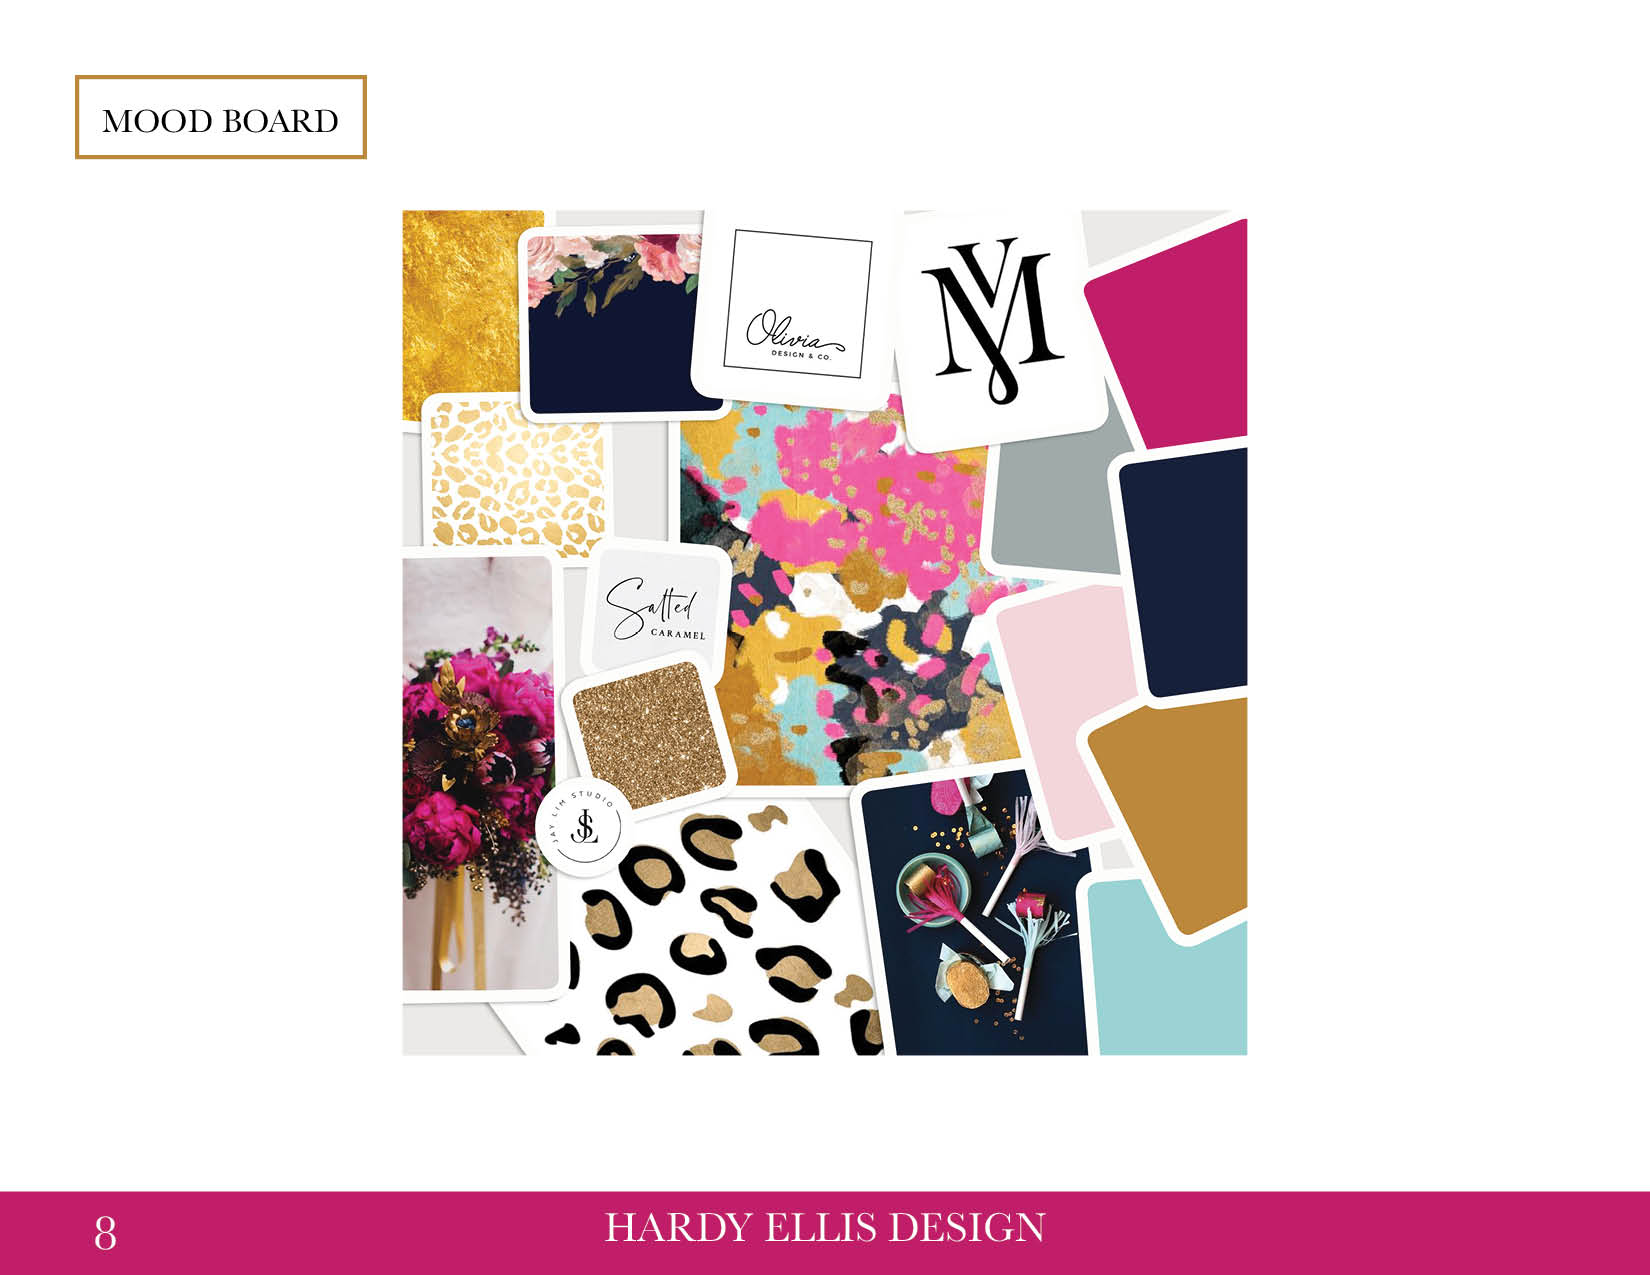 Hardy Ellis Design Style Guide8